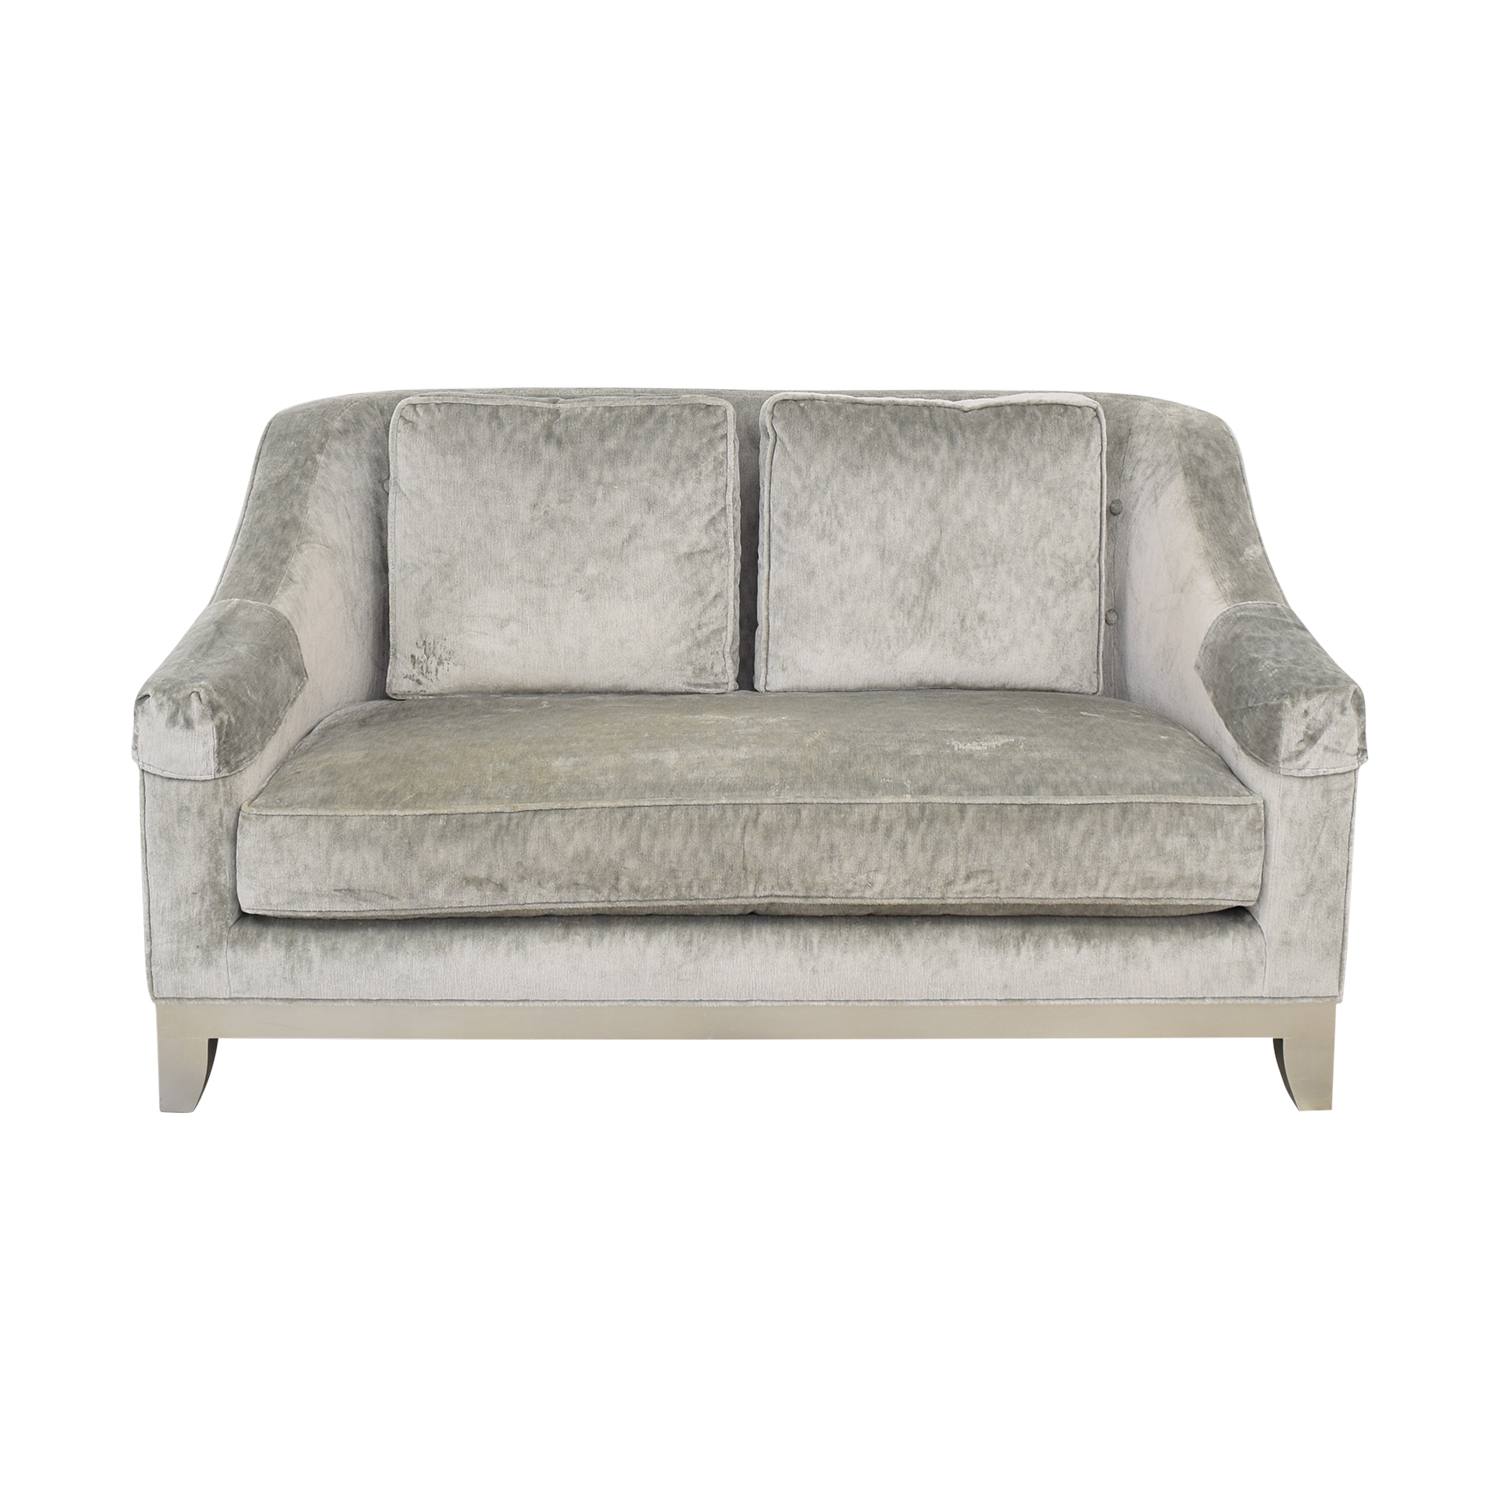 Baker Furniture Baker Two Seater Loveseat nyc